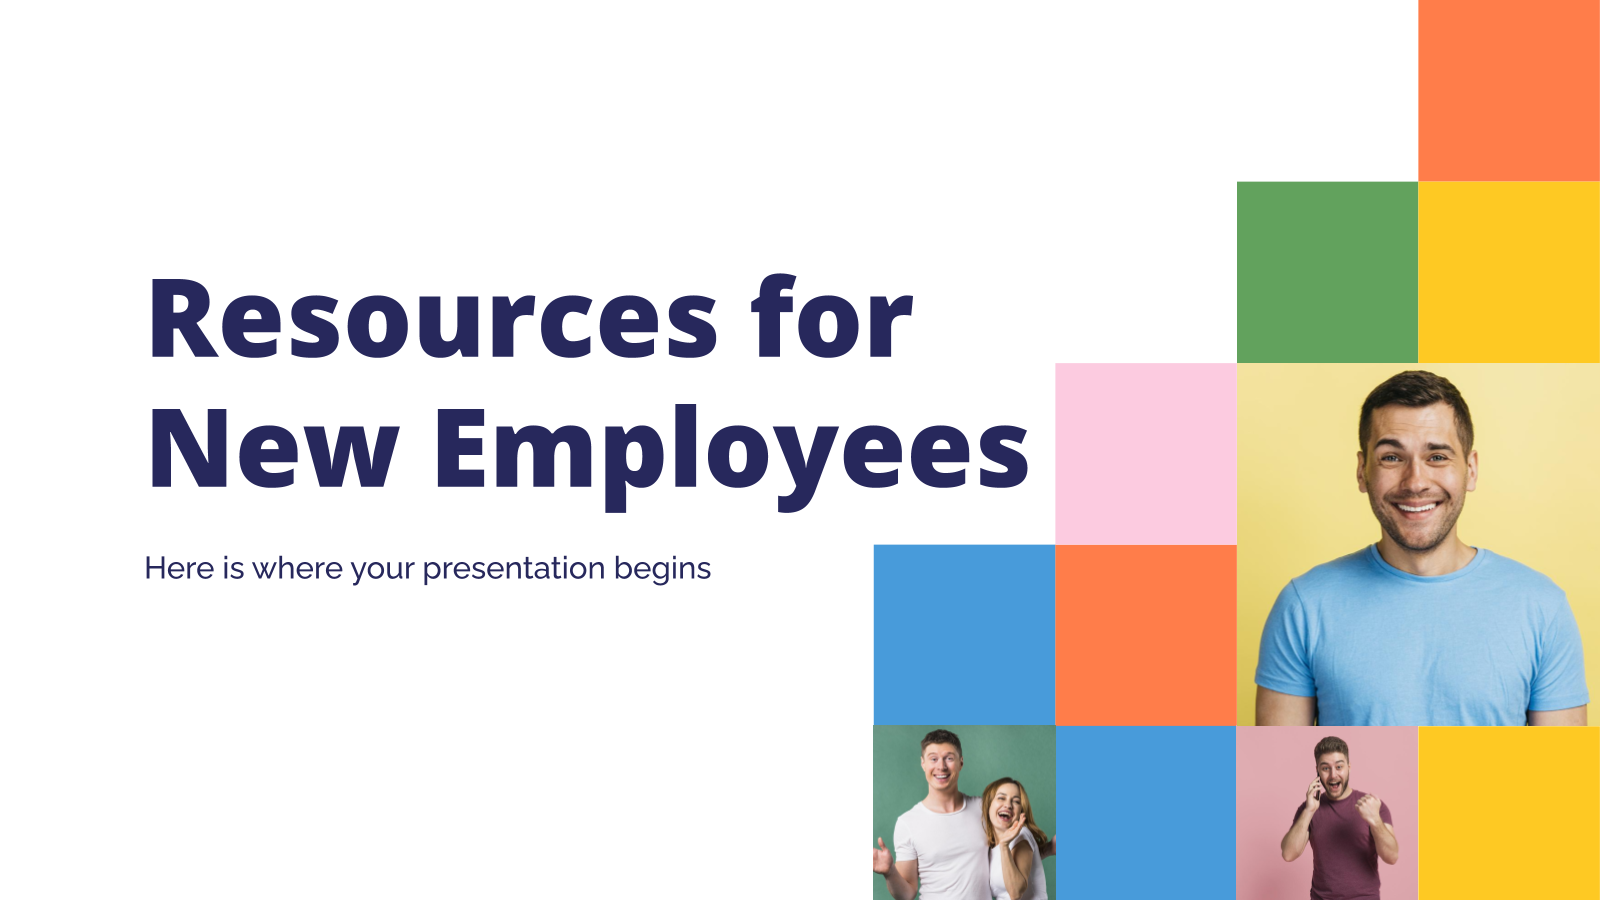 Resources for New Employees presentation template